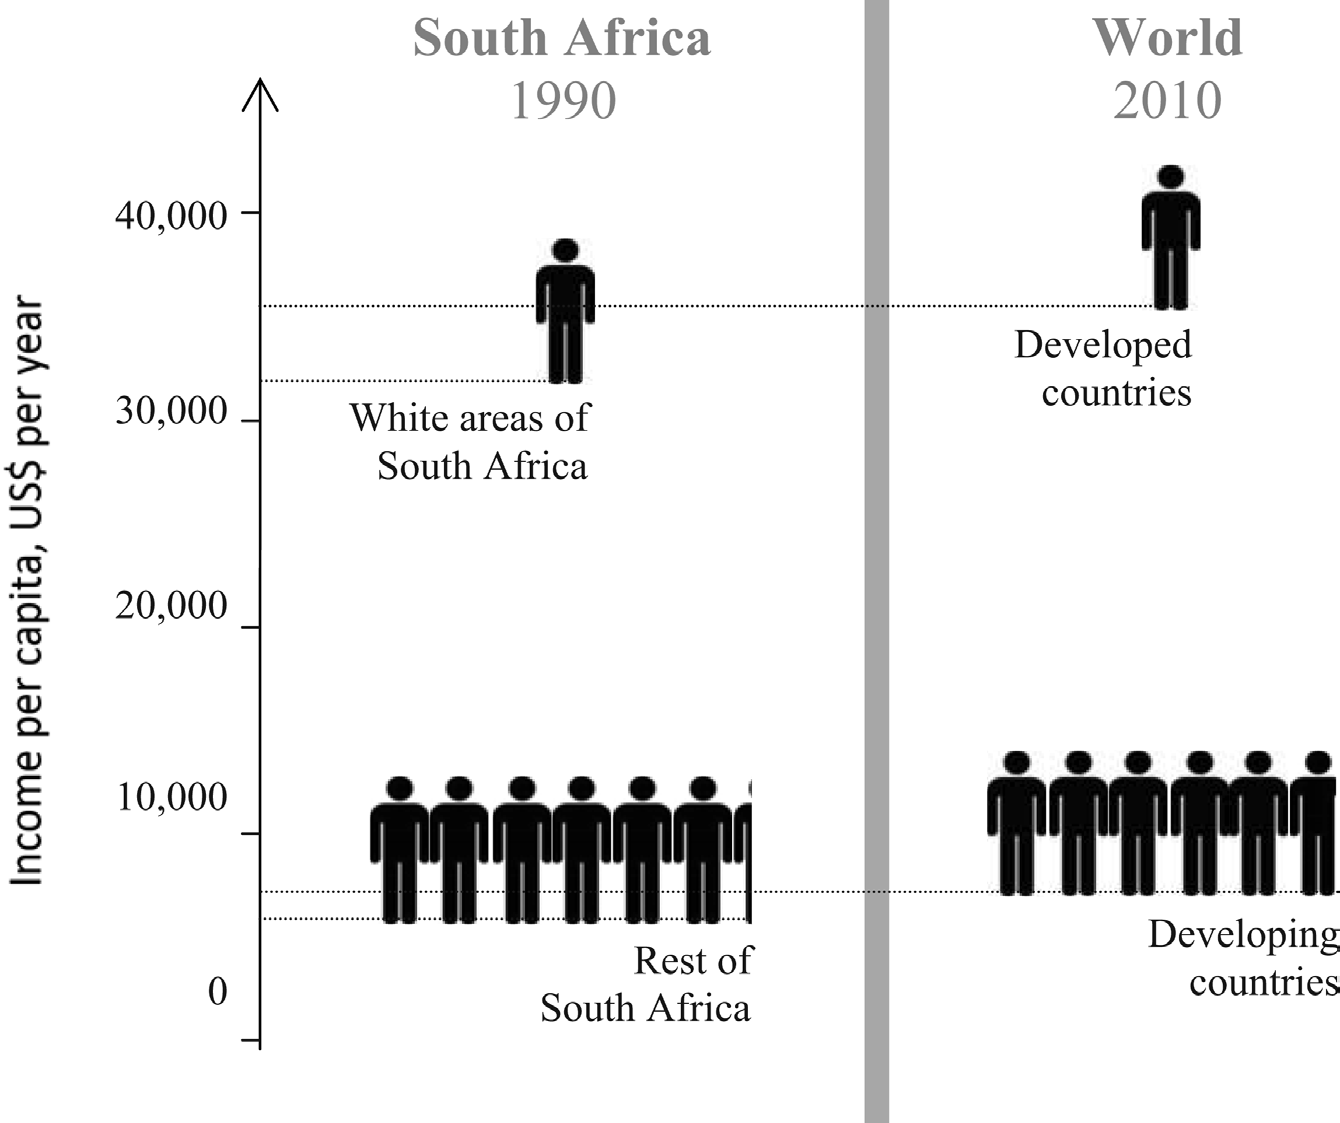 42 The Annual Proceedings of the Wealth and Well-Being of Nations Figure 4: Relative incomes and relative populations: Today s world looks much like South Africa just before Apartheid ended Sources: